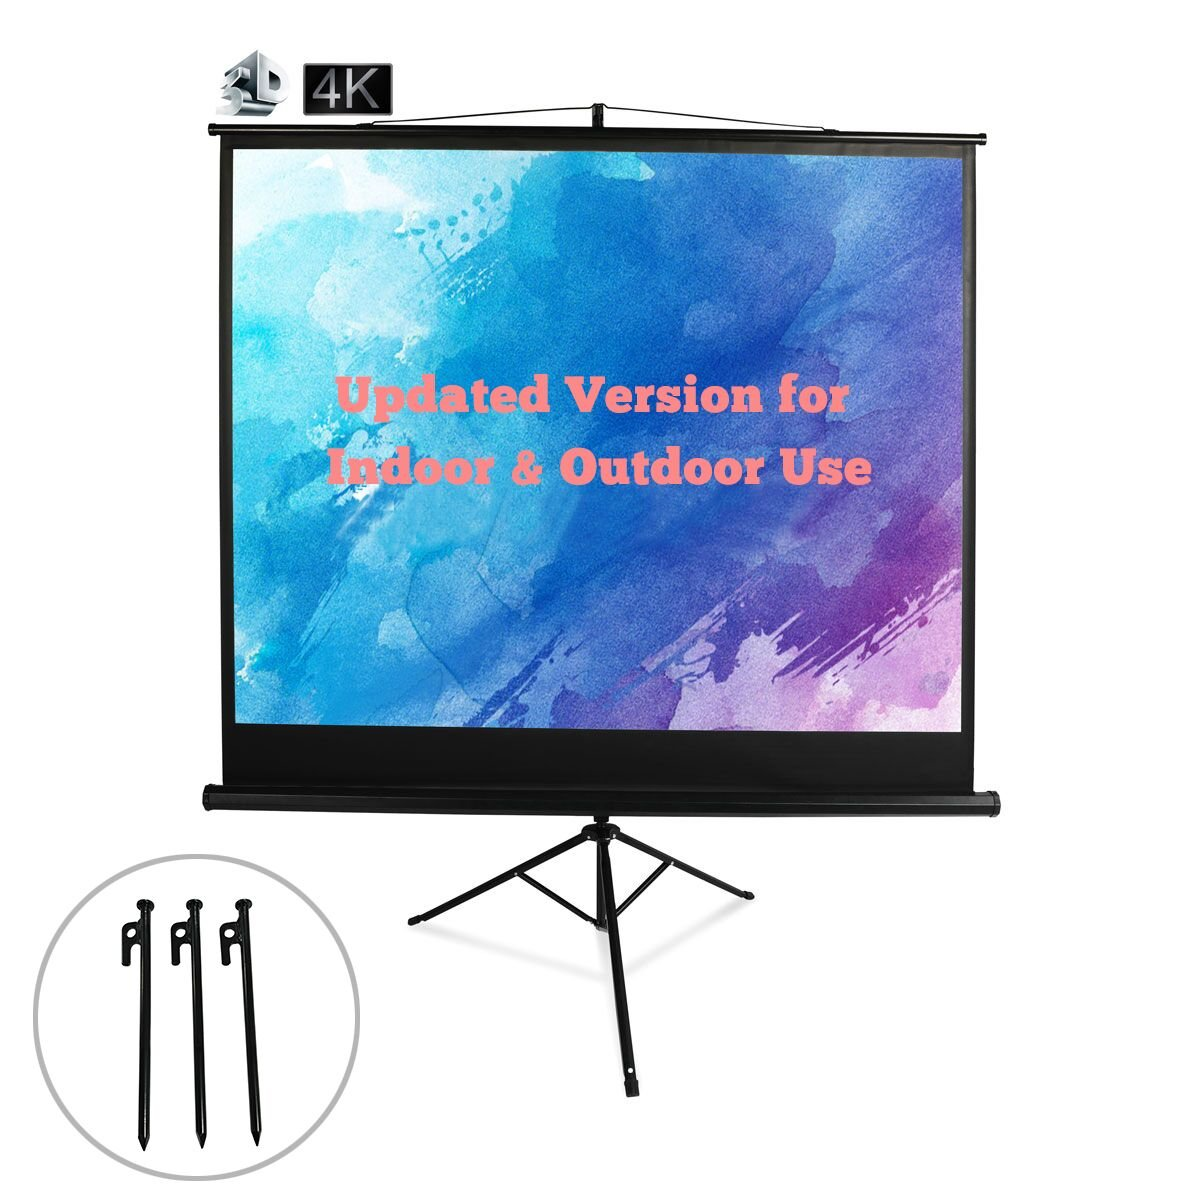 84'' Portable Projector Screen with Stand, for Both Outdoor Projection Screen and Office School Presentation Projection Screen, 84 inch Diagonal, 4:3, Black Frame